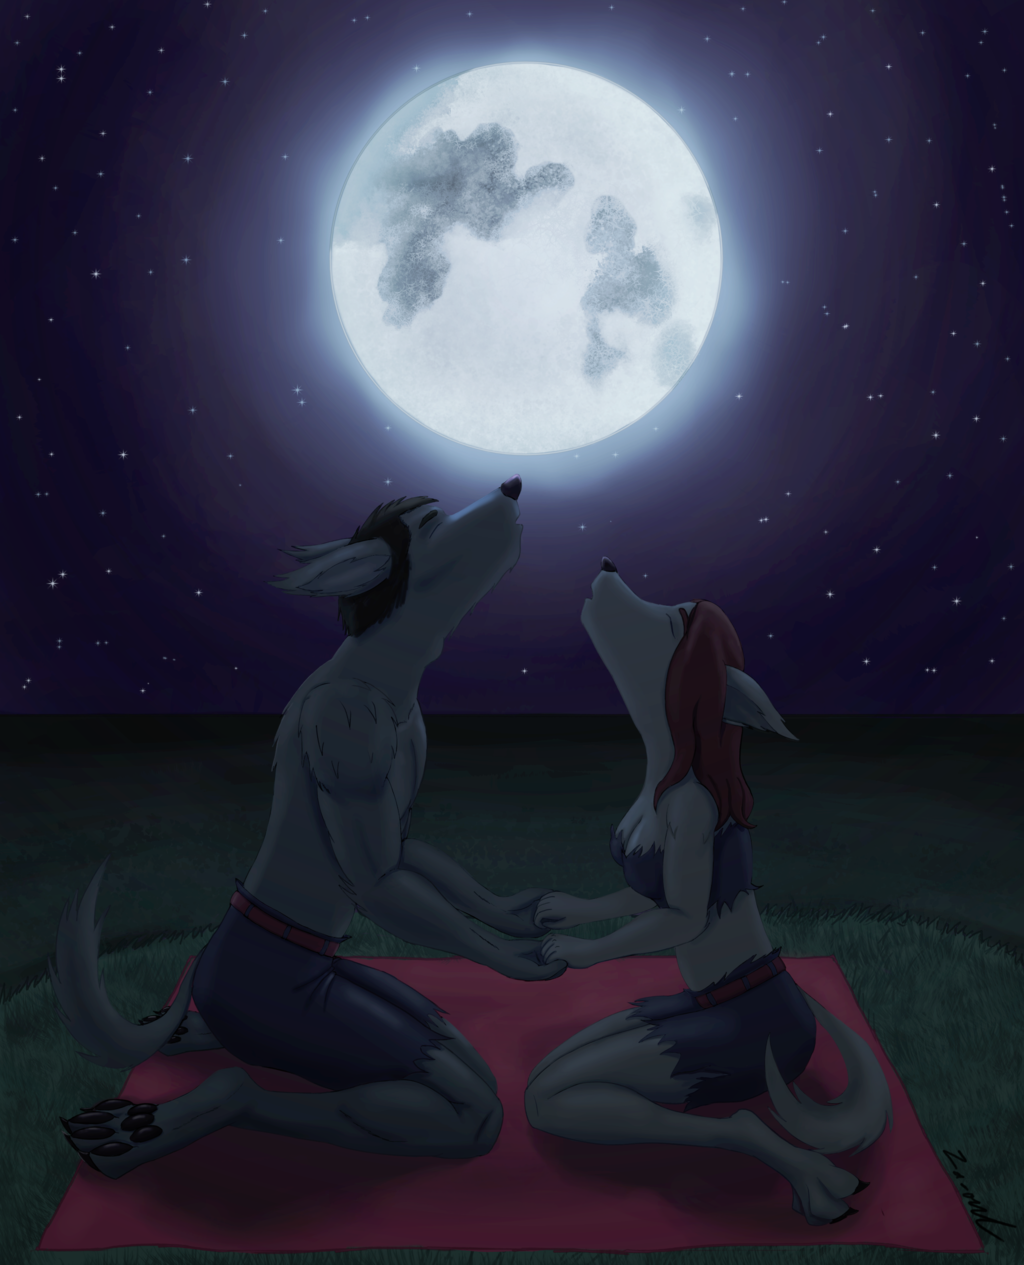 [Request] Lovers in the moonlight